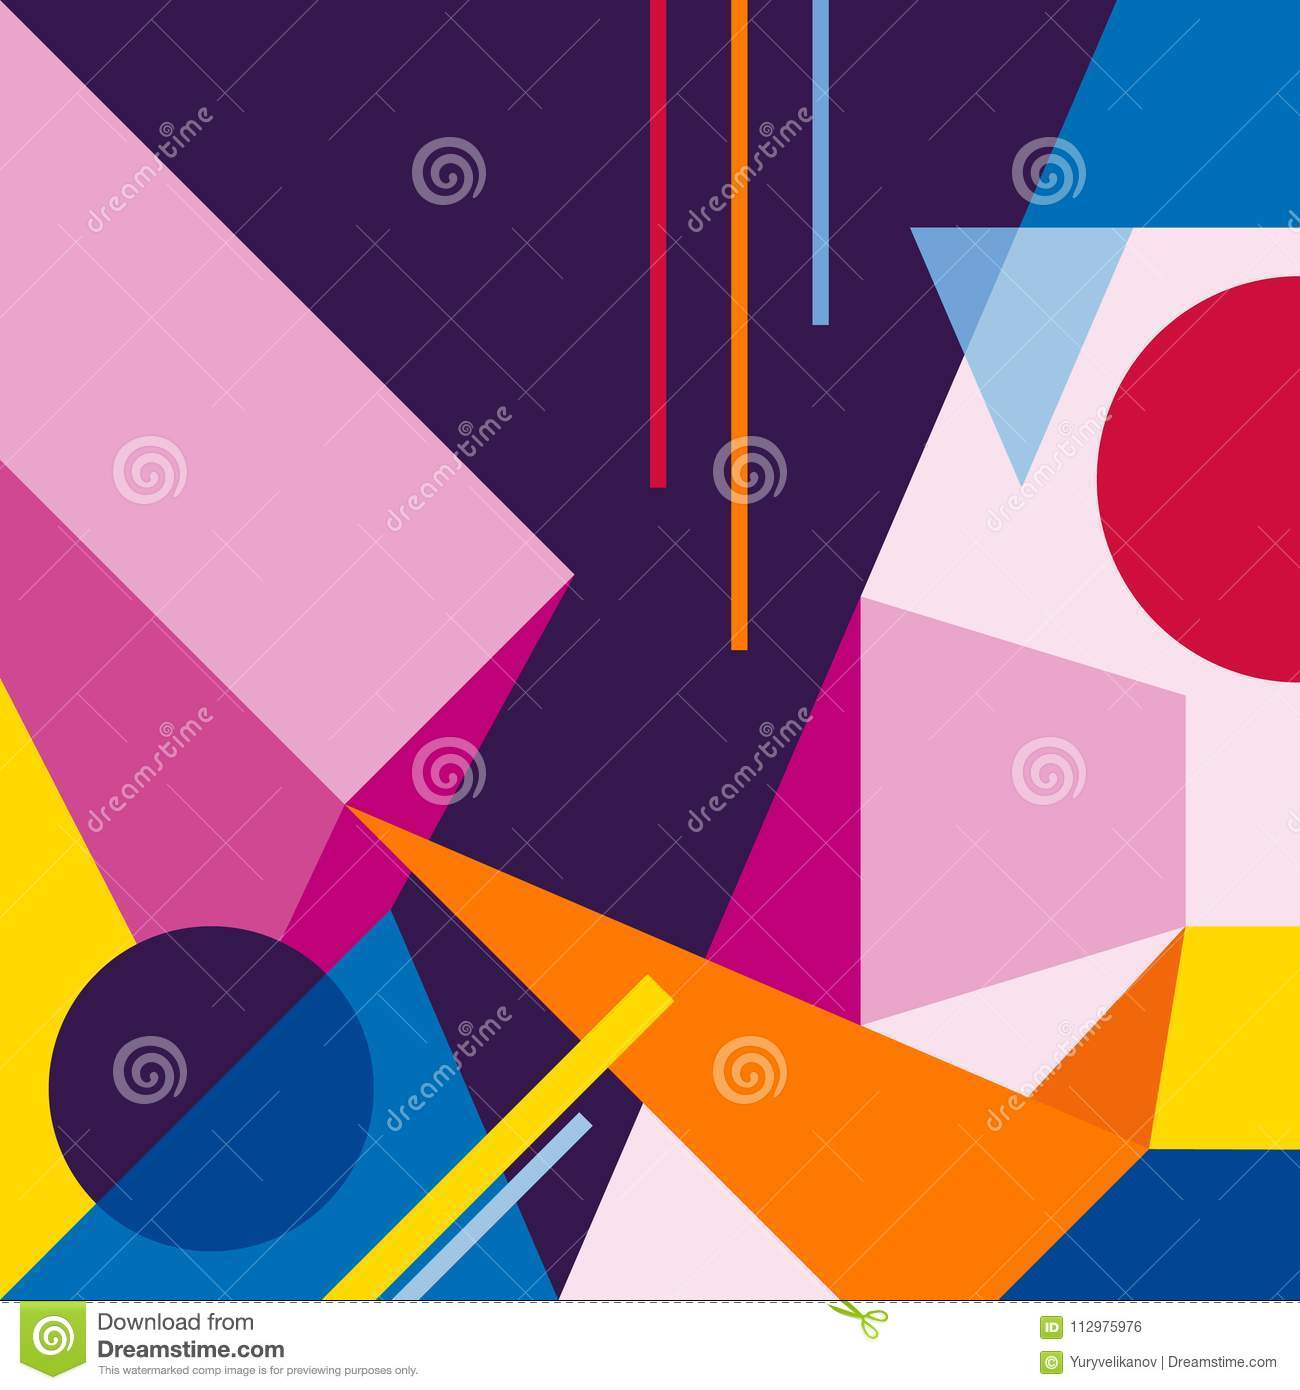 Abstract modern geometric background. Composition 3